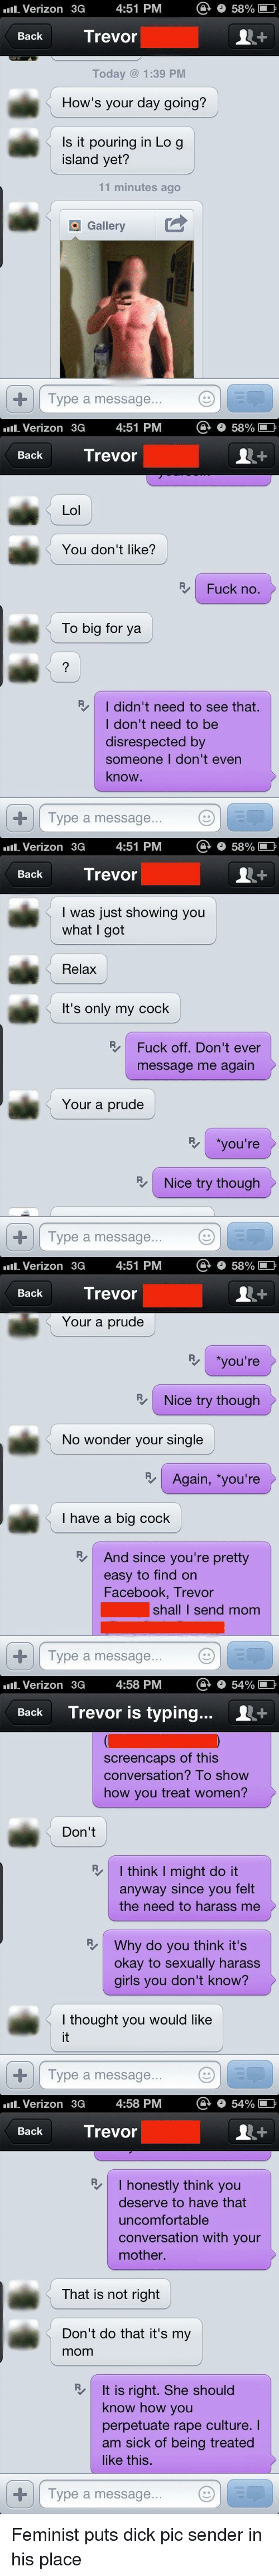 Dick Pics, Dicks, and Facebook: Verizon 2a 4:51 PM o  Back Trevor  How's your day going?  Is it pouring in Log  You don't like?  To big for ya  I didn't need to see that.  I don't need to be  disrespected by  someone I don't even  Type a message  I was just showing you  Relax  It's only my cock  Fuck off Don't ever  message me again  Your a prude  Verizon 3a 4:51 PM o sa%  Back Trevor  Nice try though  No wonder your single  I have a big cock  And since you're pretty  easy to find on  Facebook, Trevor  shall I send mom  Type a message  Back Trevor is typing... 1+  screencaps of this  conversation? To show  how you treat women?  I think I might do it  anyway since you felt  the need to harass me  Why do you think it's  okay to sexualy harass  girls you don't know?  I thought you would like  Back Trevor  honestly think you  deserve to have that  uncomfortable  conversation with your  That is not right  Don't do that it's my  It is right. She should  know how you  perpetuate rape culture. I  am sick of being treated Feminist puts dick pic sender in his place